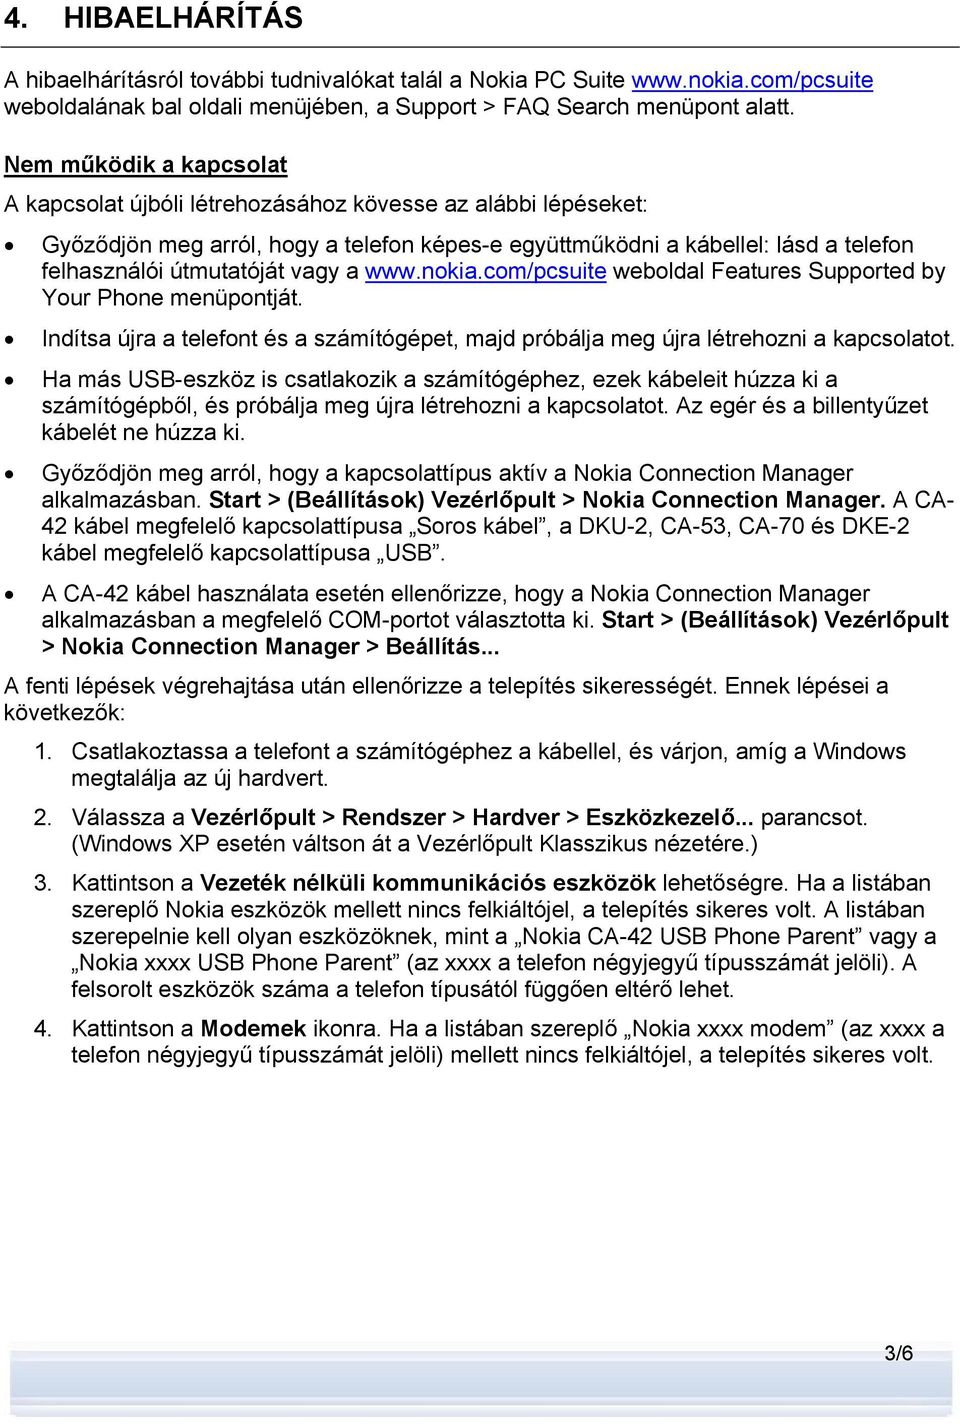 vagy a www.nokia.com/pcsuite weboldal Features Supported by Your Phone menüpontját. Indítsa újra a telefont és a számítógépet, majd próbálja meg újra létrehozni a kapcsolatot.